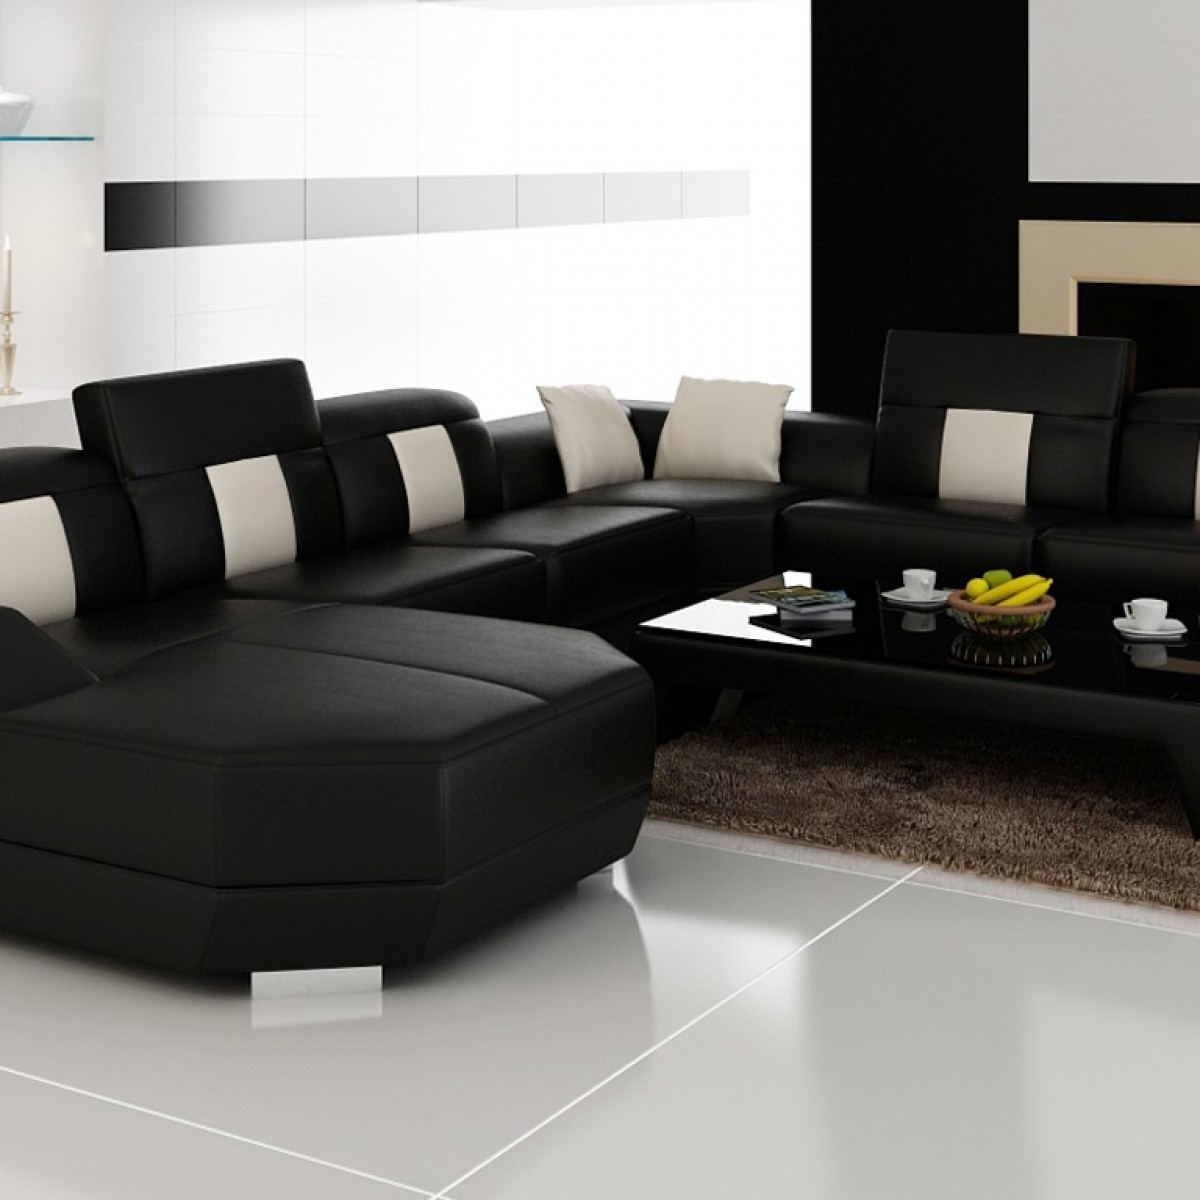 Most Recently Released Adjustable Sectional Sofas With Queen Bed In Furniture : Sectional Sofa Queen Sleeper Corner Couch Liverpool (View 11 of 20)